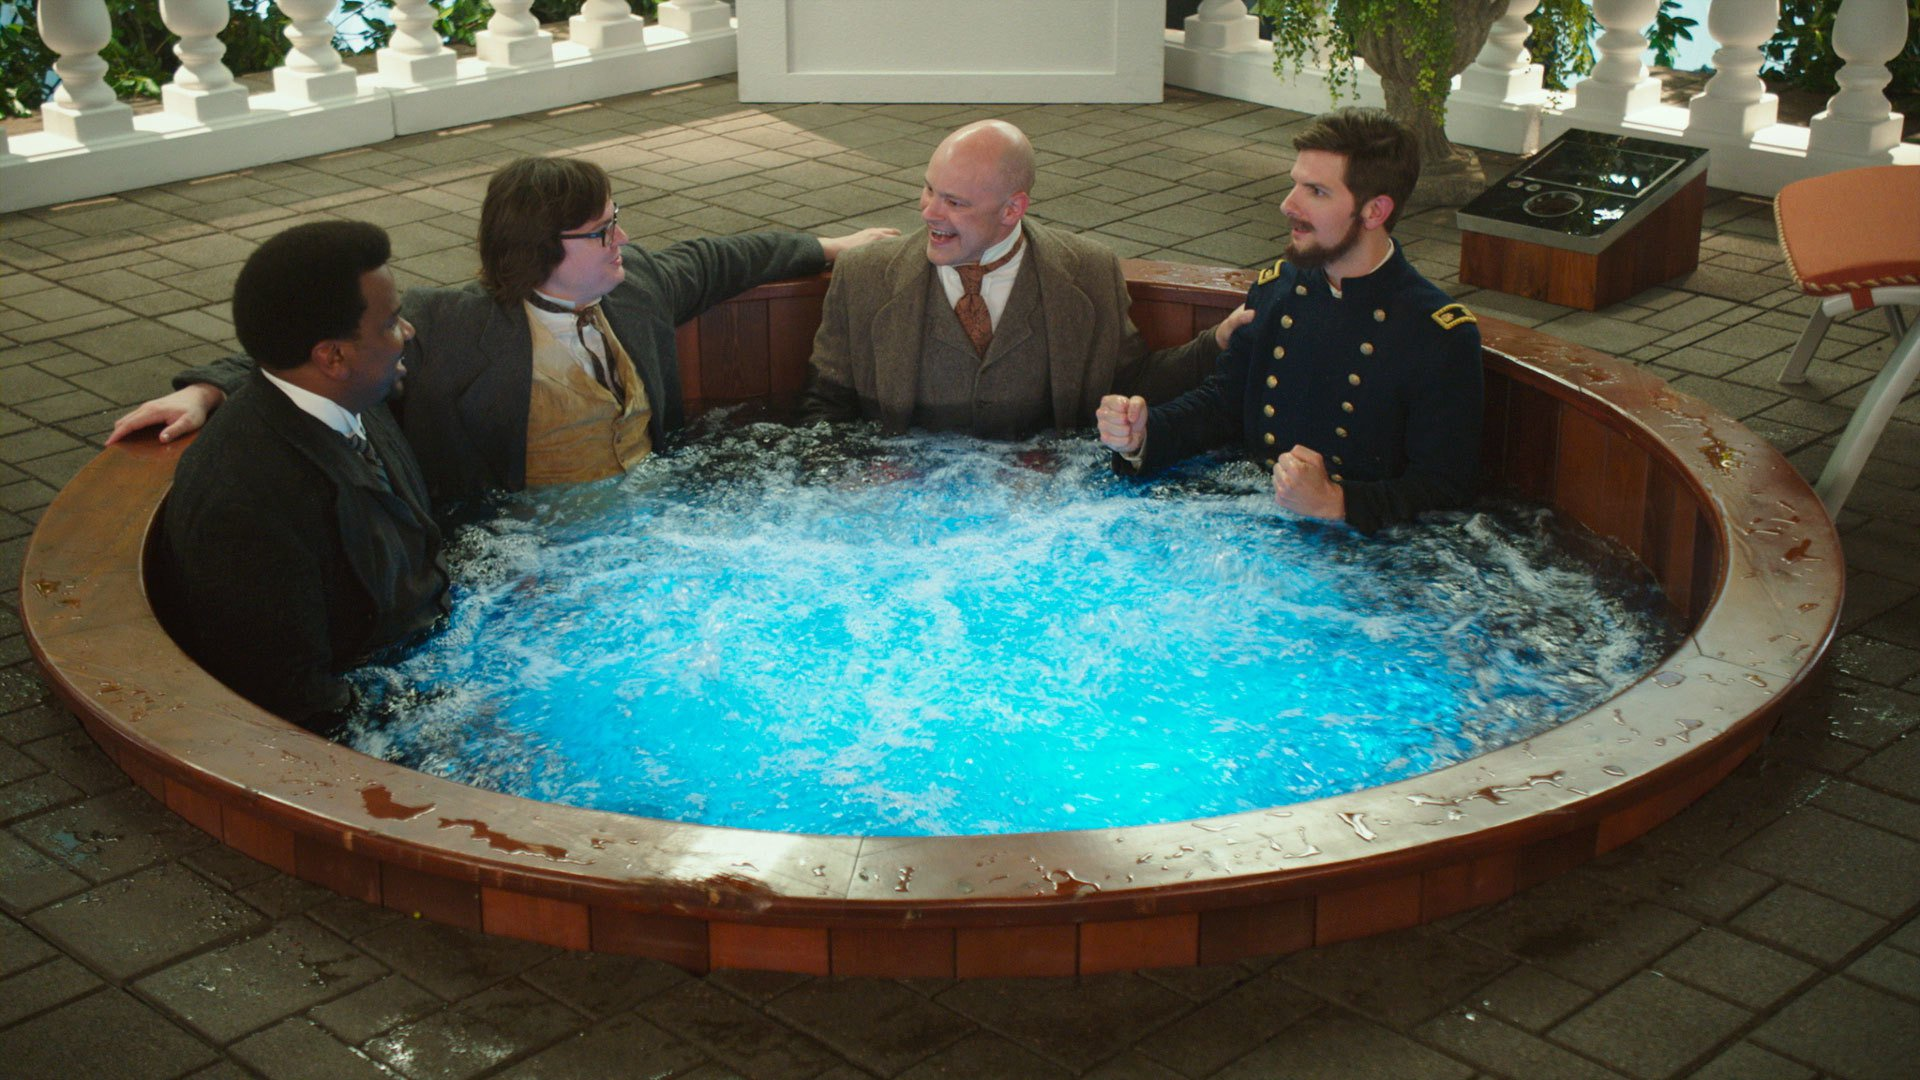 Hot Tub Time Machine 2 HD Wallpaper Background Image 1920x1080 1920x1080